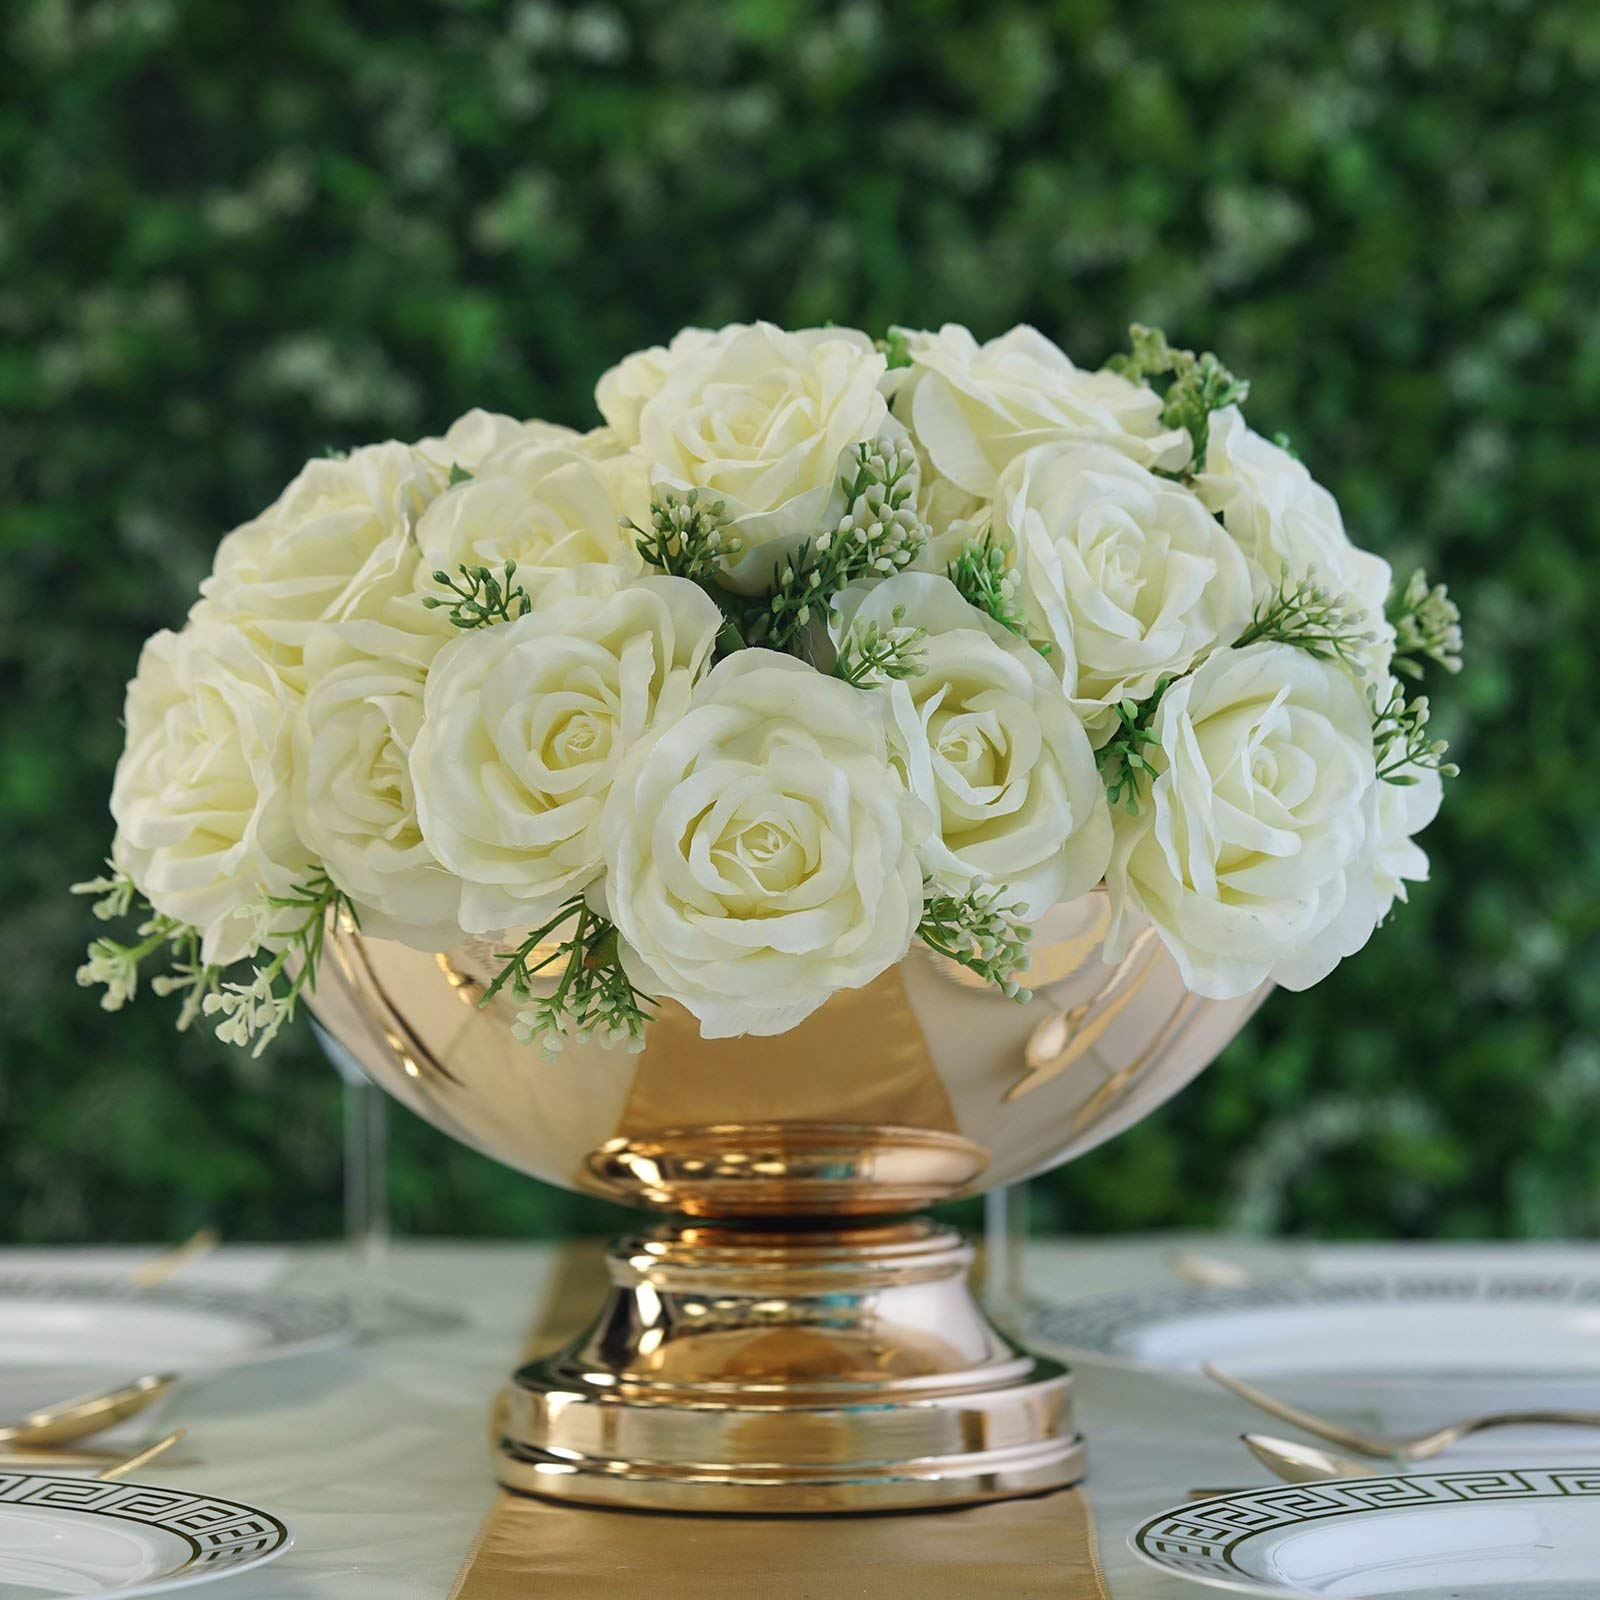 Tableclothsfactory 12'' Metallic Gold Floating Candle Pedestal Bowl Flower Pot Wedding Centerpiece for Wedding Events Decoration